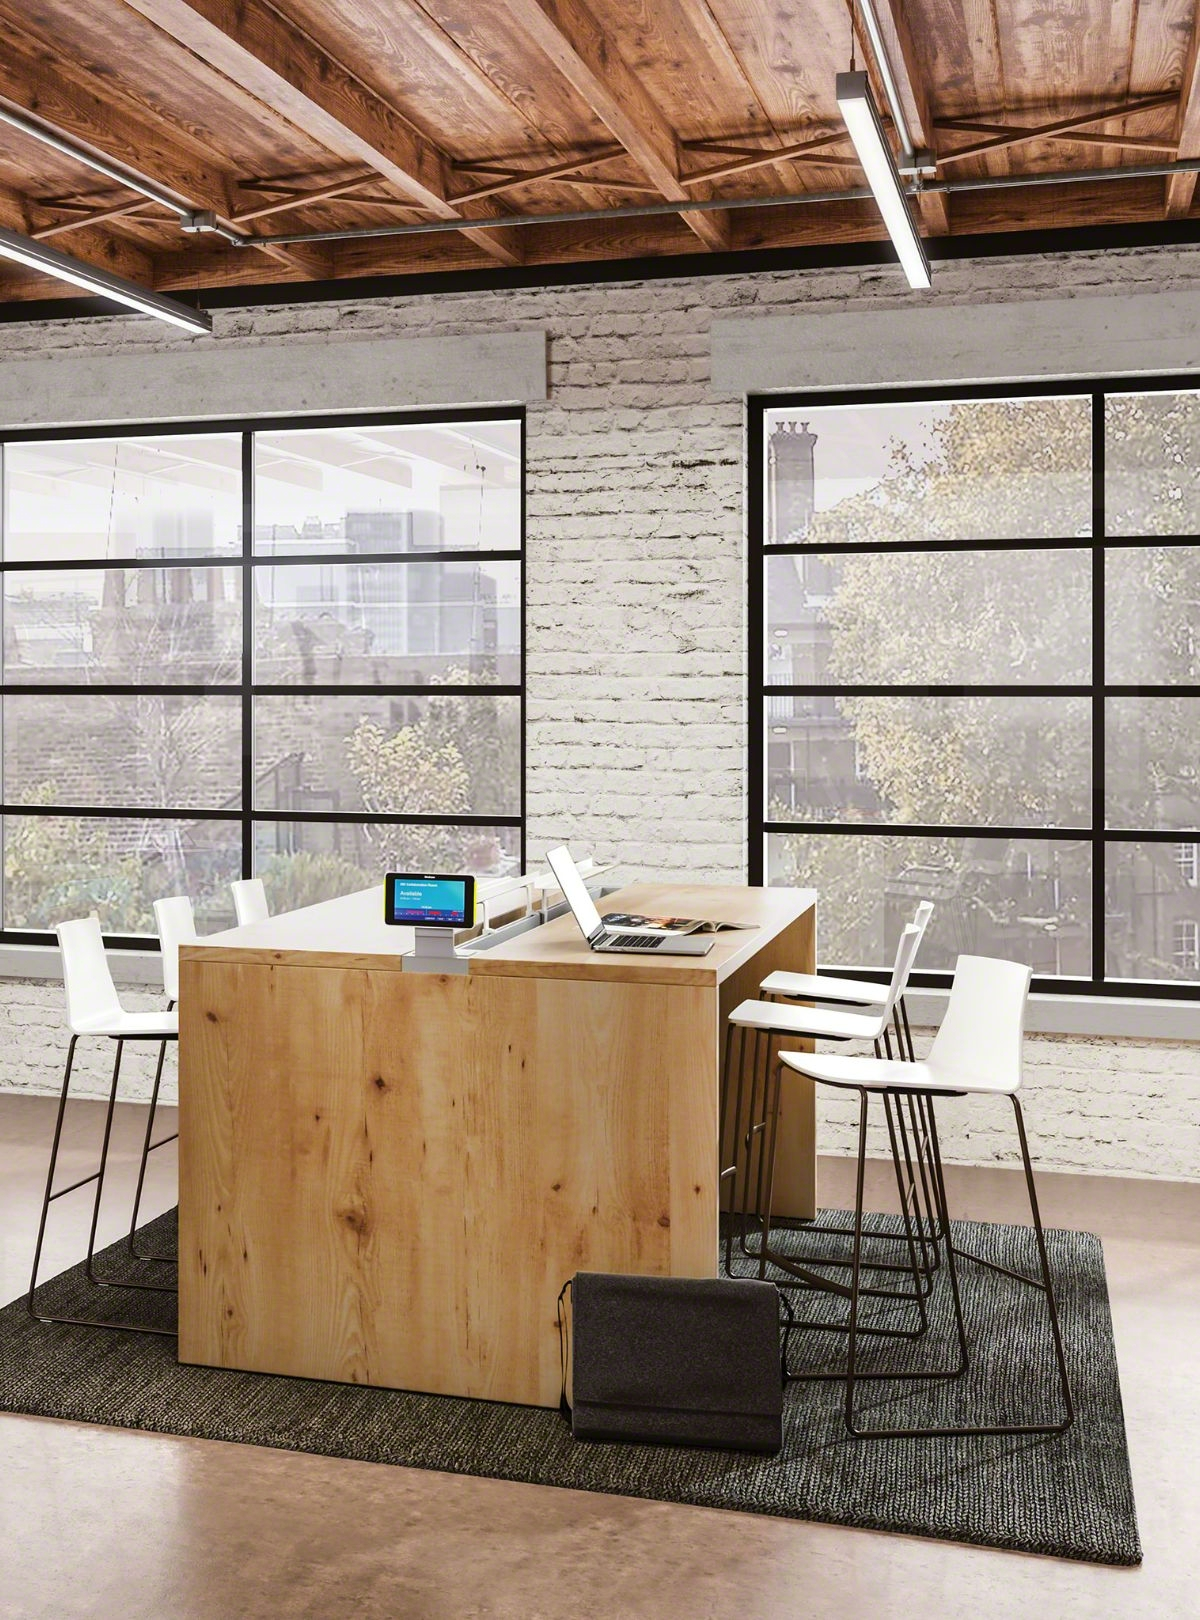 Furniture surface materials finishes steelcase download image save image geenschuldenfo Choice Image